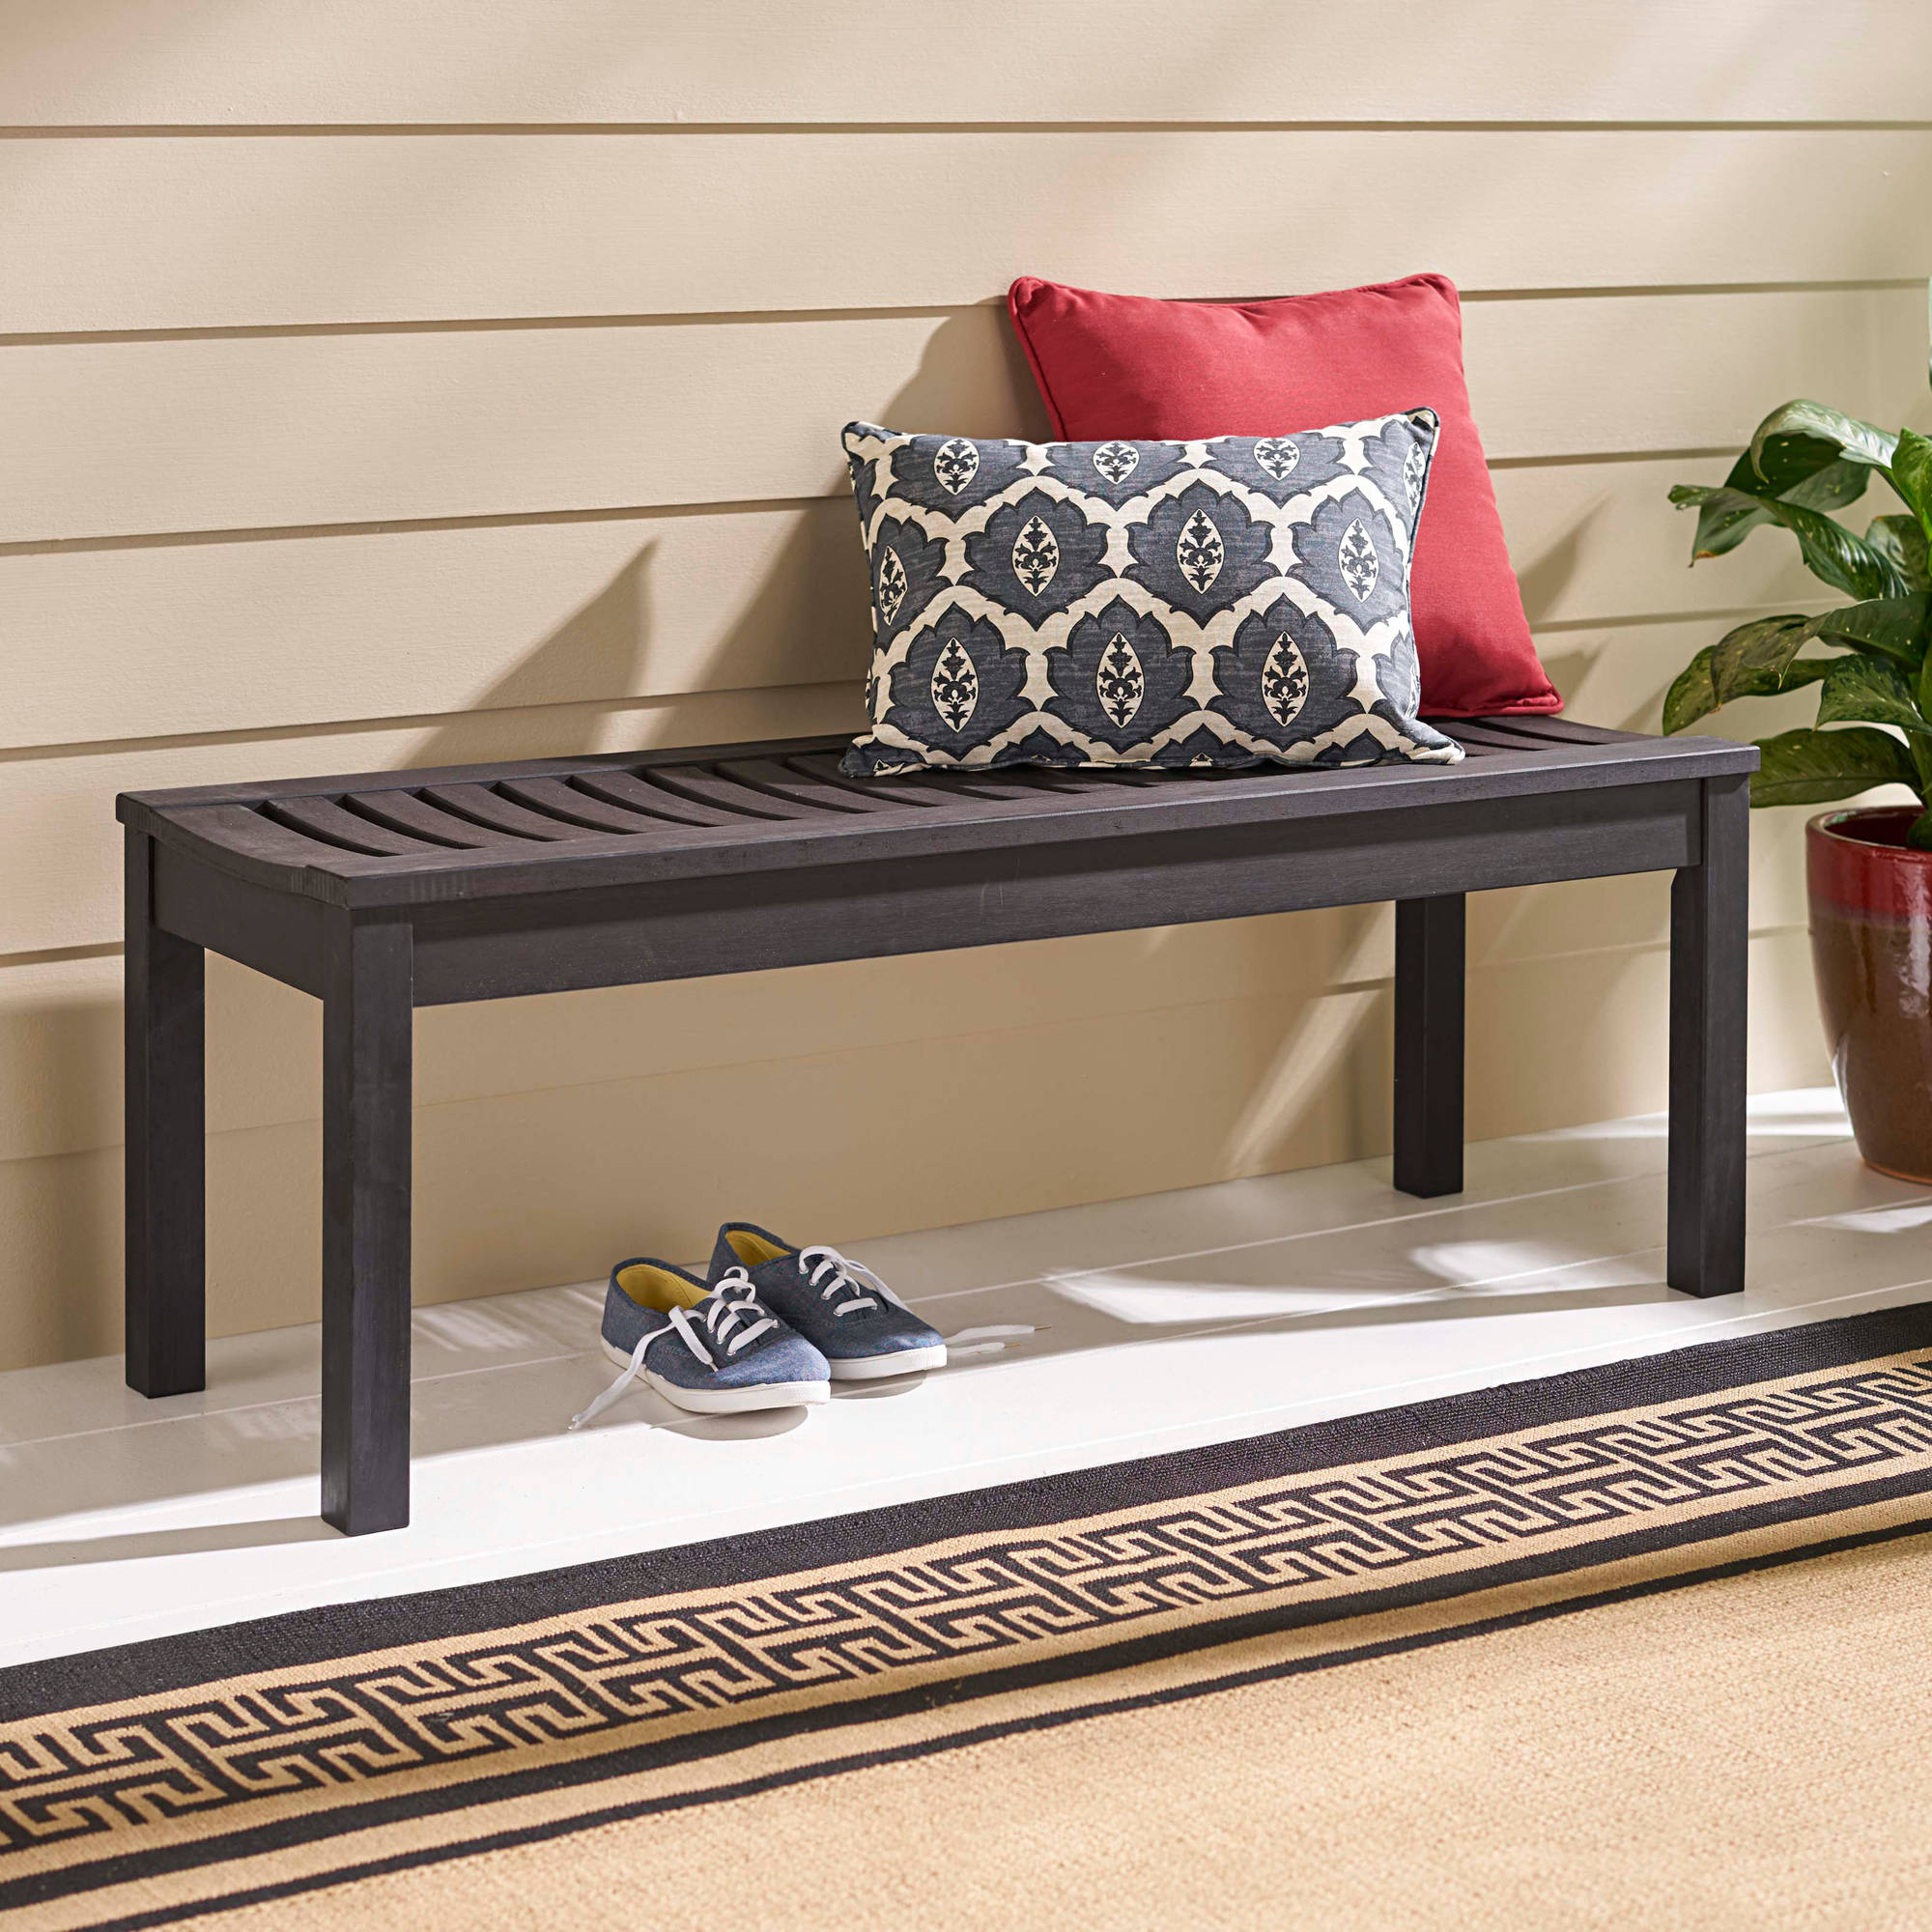 Better Homes and Gardens Delahey Backless Outdoor Bench, Dark Brown